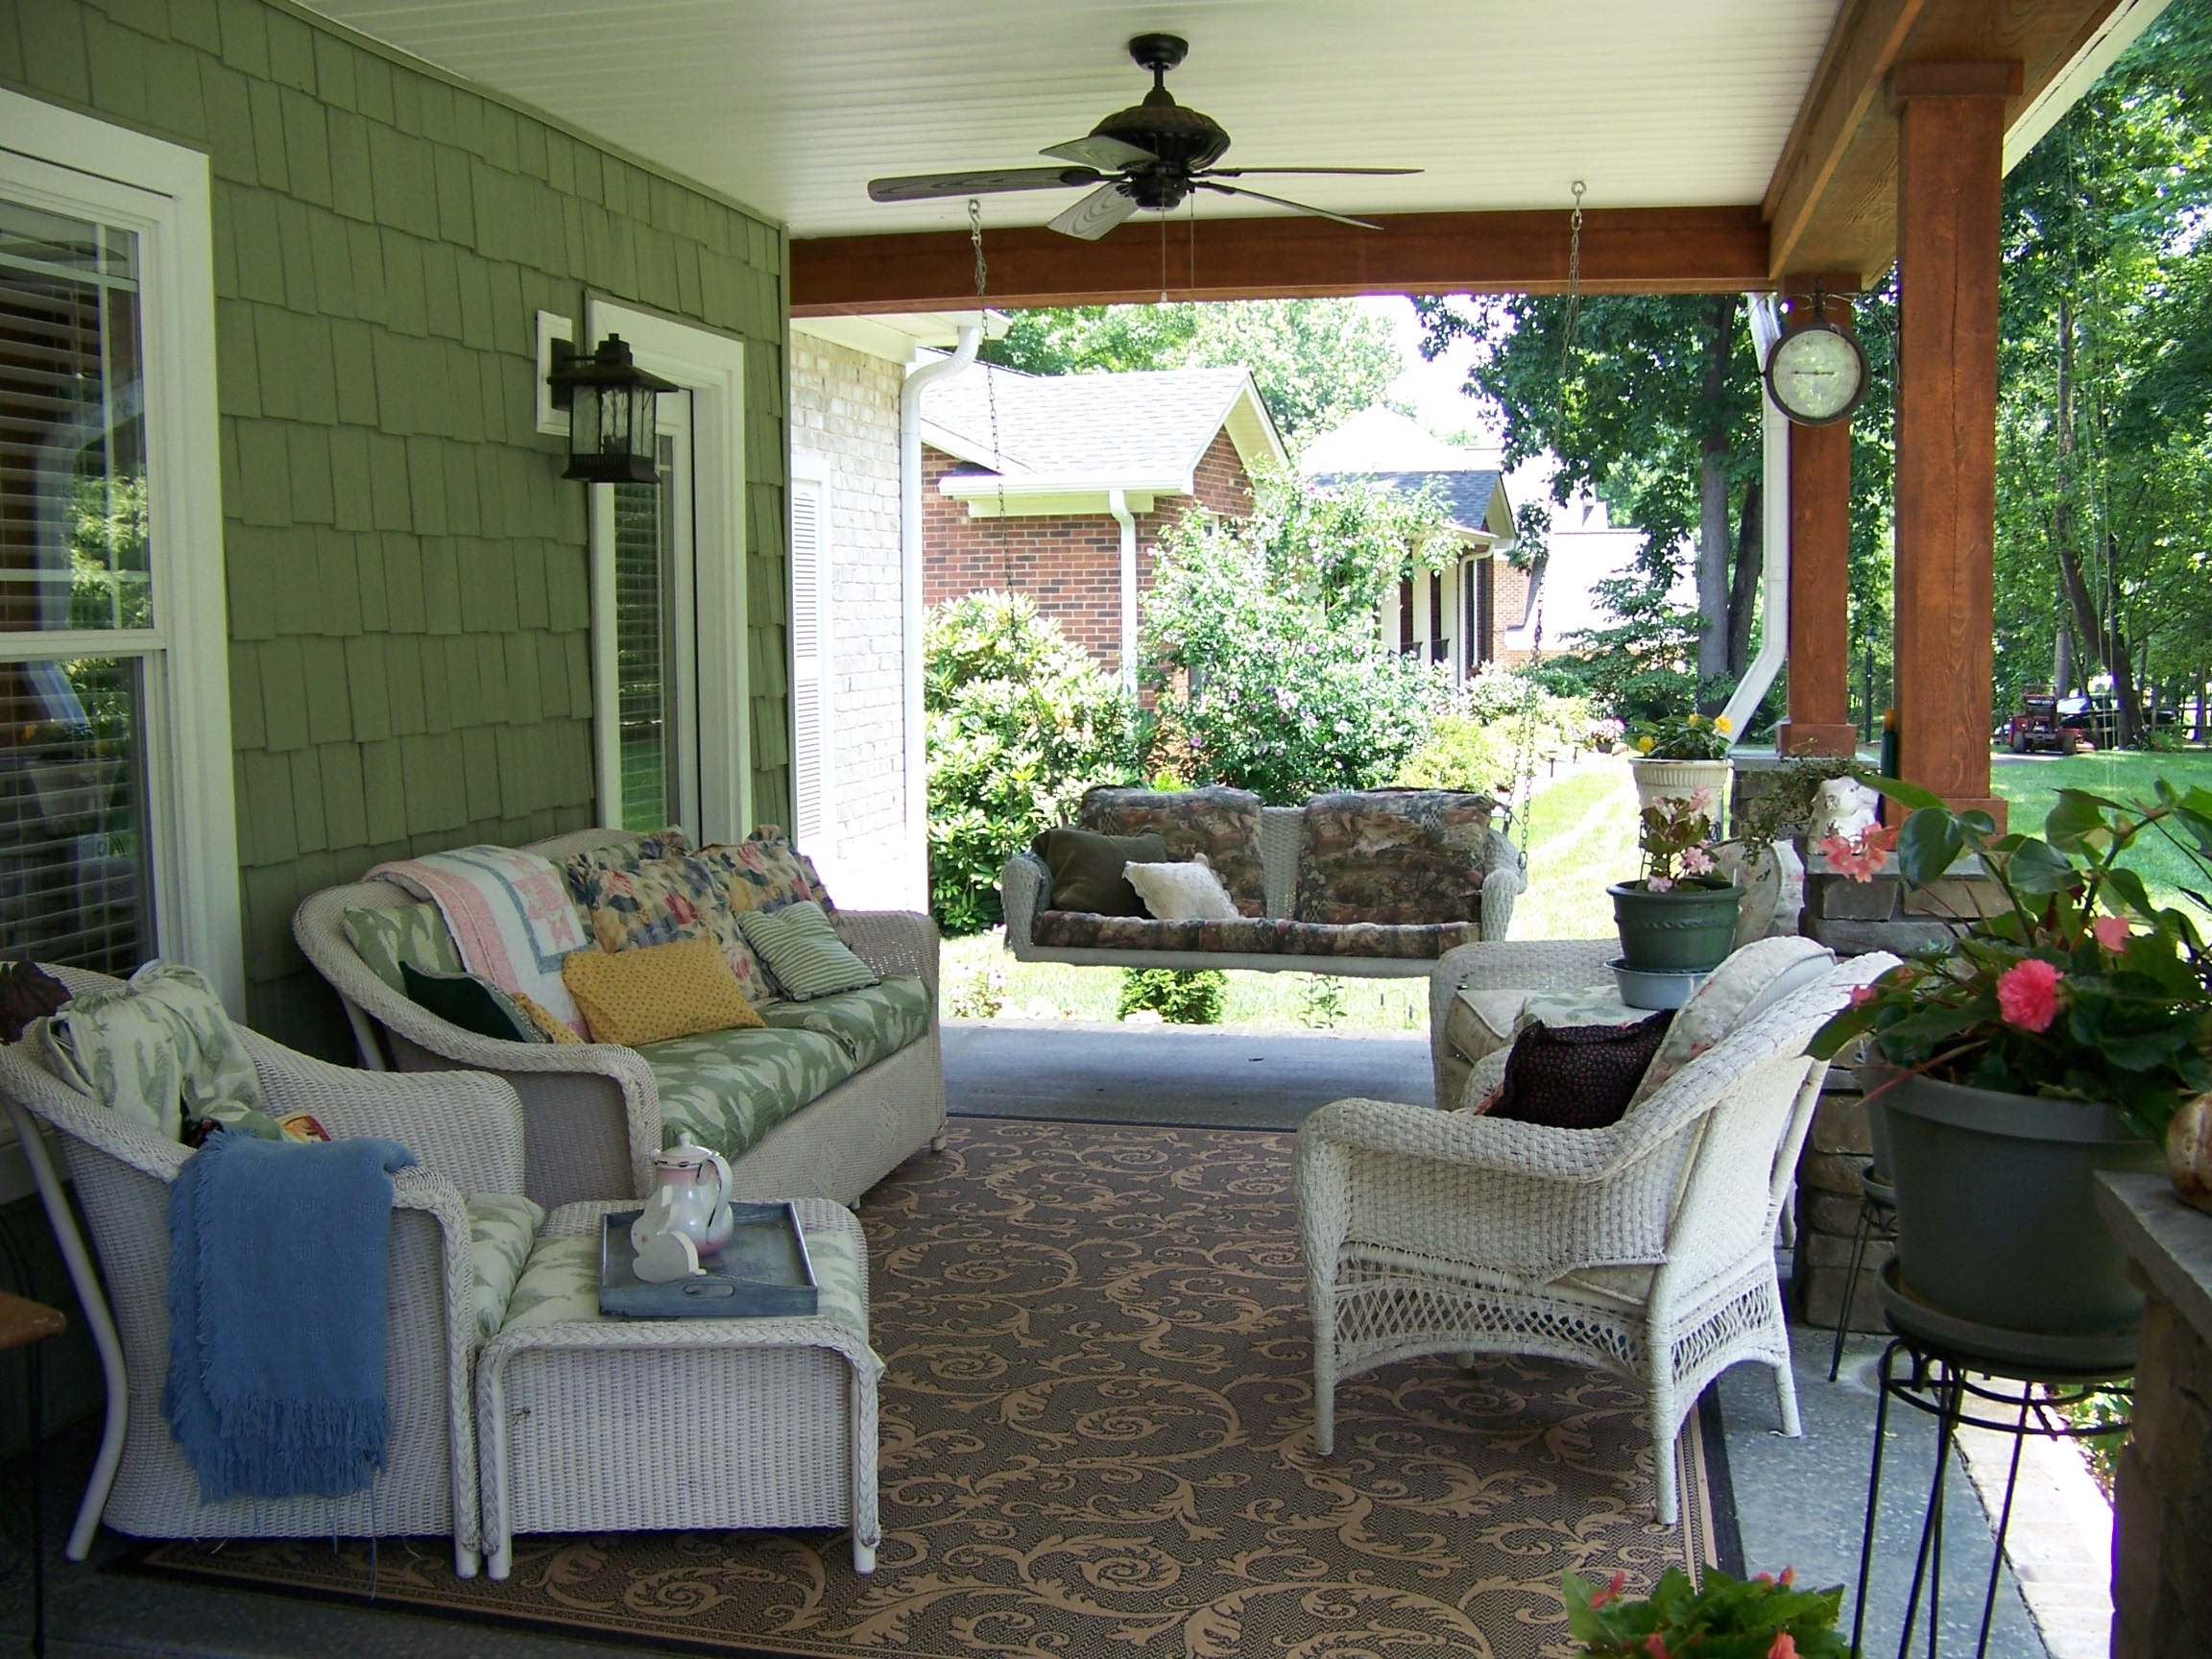 Most Recent Impressive Ceiling Fan Over White Porch Sets On Brown Floral Themes For Vintage Look Outdoor Ceiling Fans (View 20 of 20)